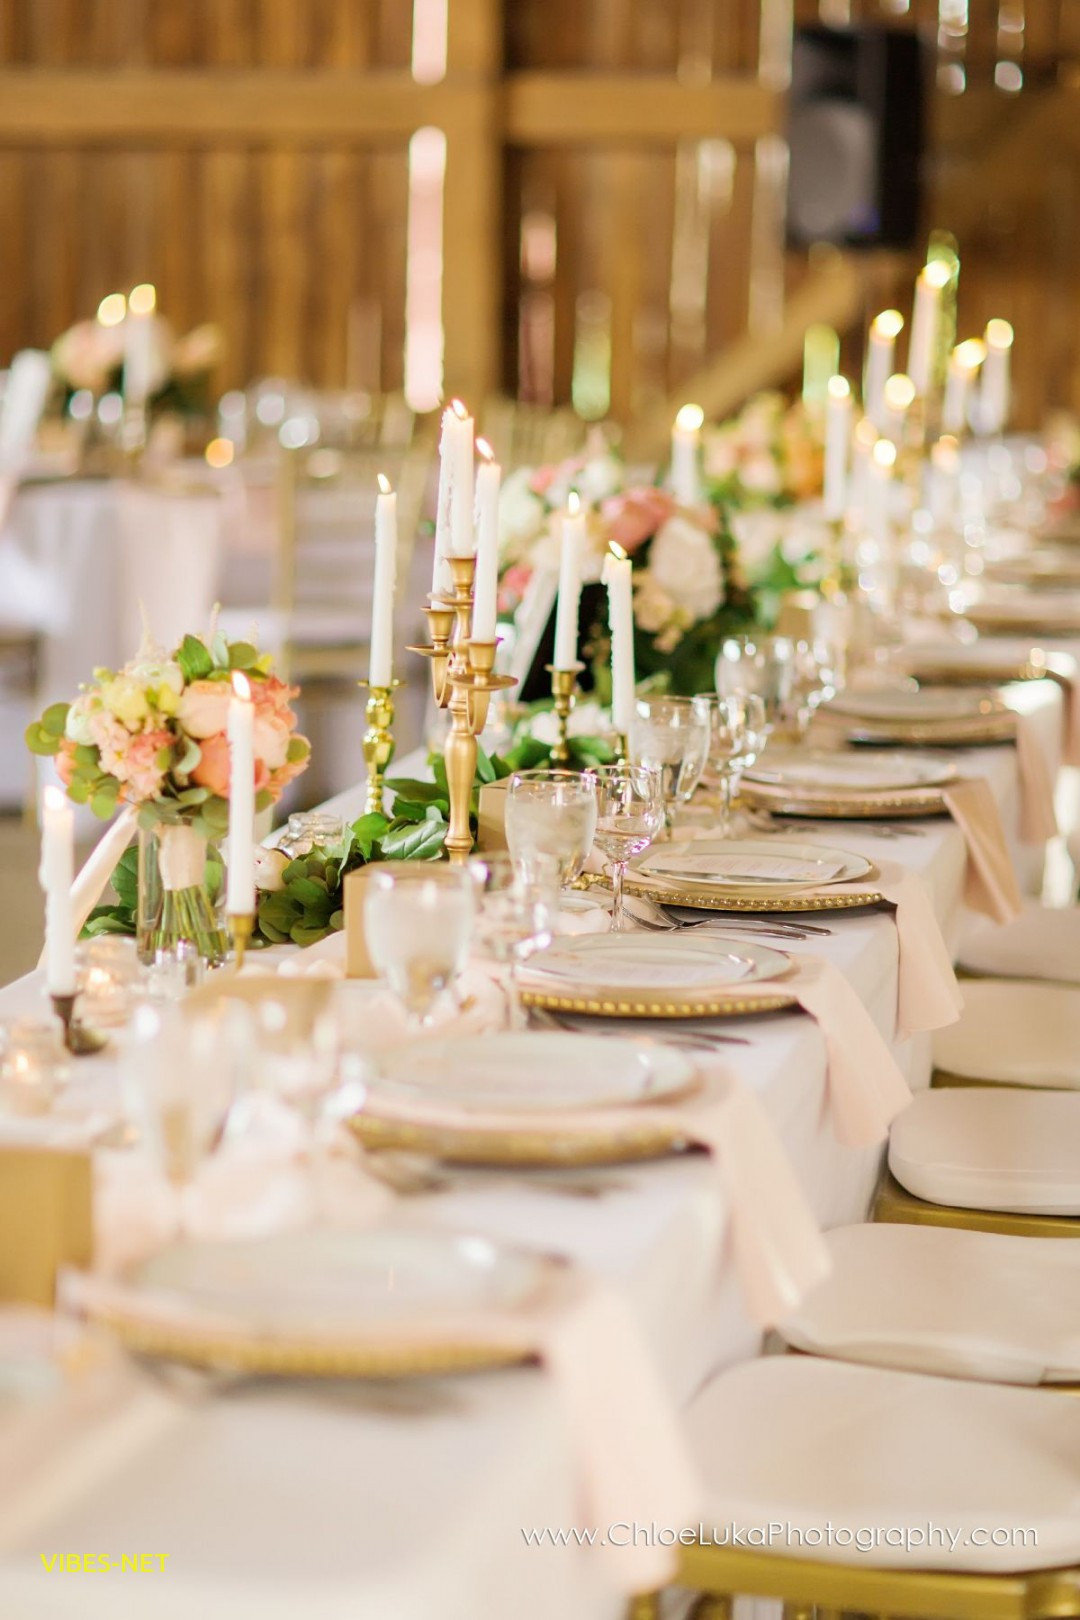 wedding vase rentals of 17awesome beach themed wedding reception decoration ideas with regard to beach themed wedding reception decoration ideas inspirational inspirational wedding reception decoration rentals of 17awesome beach themed